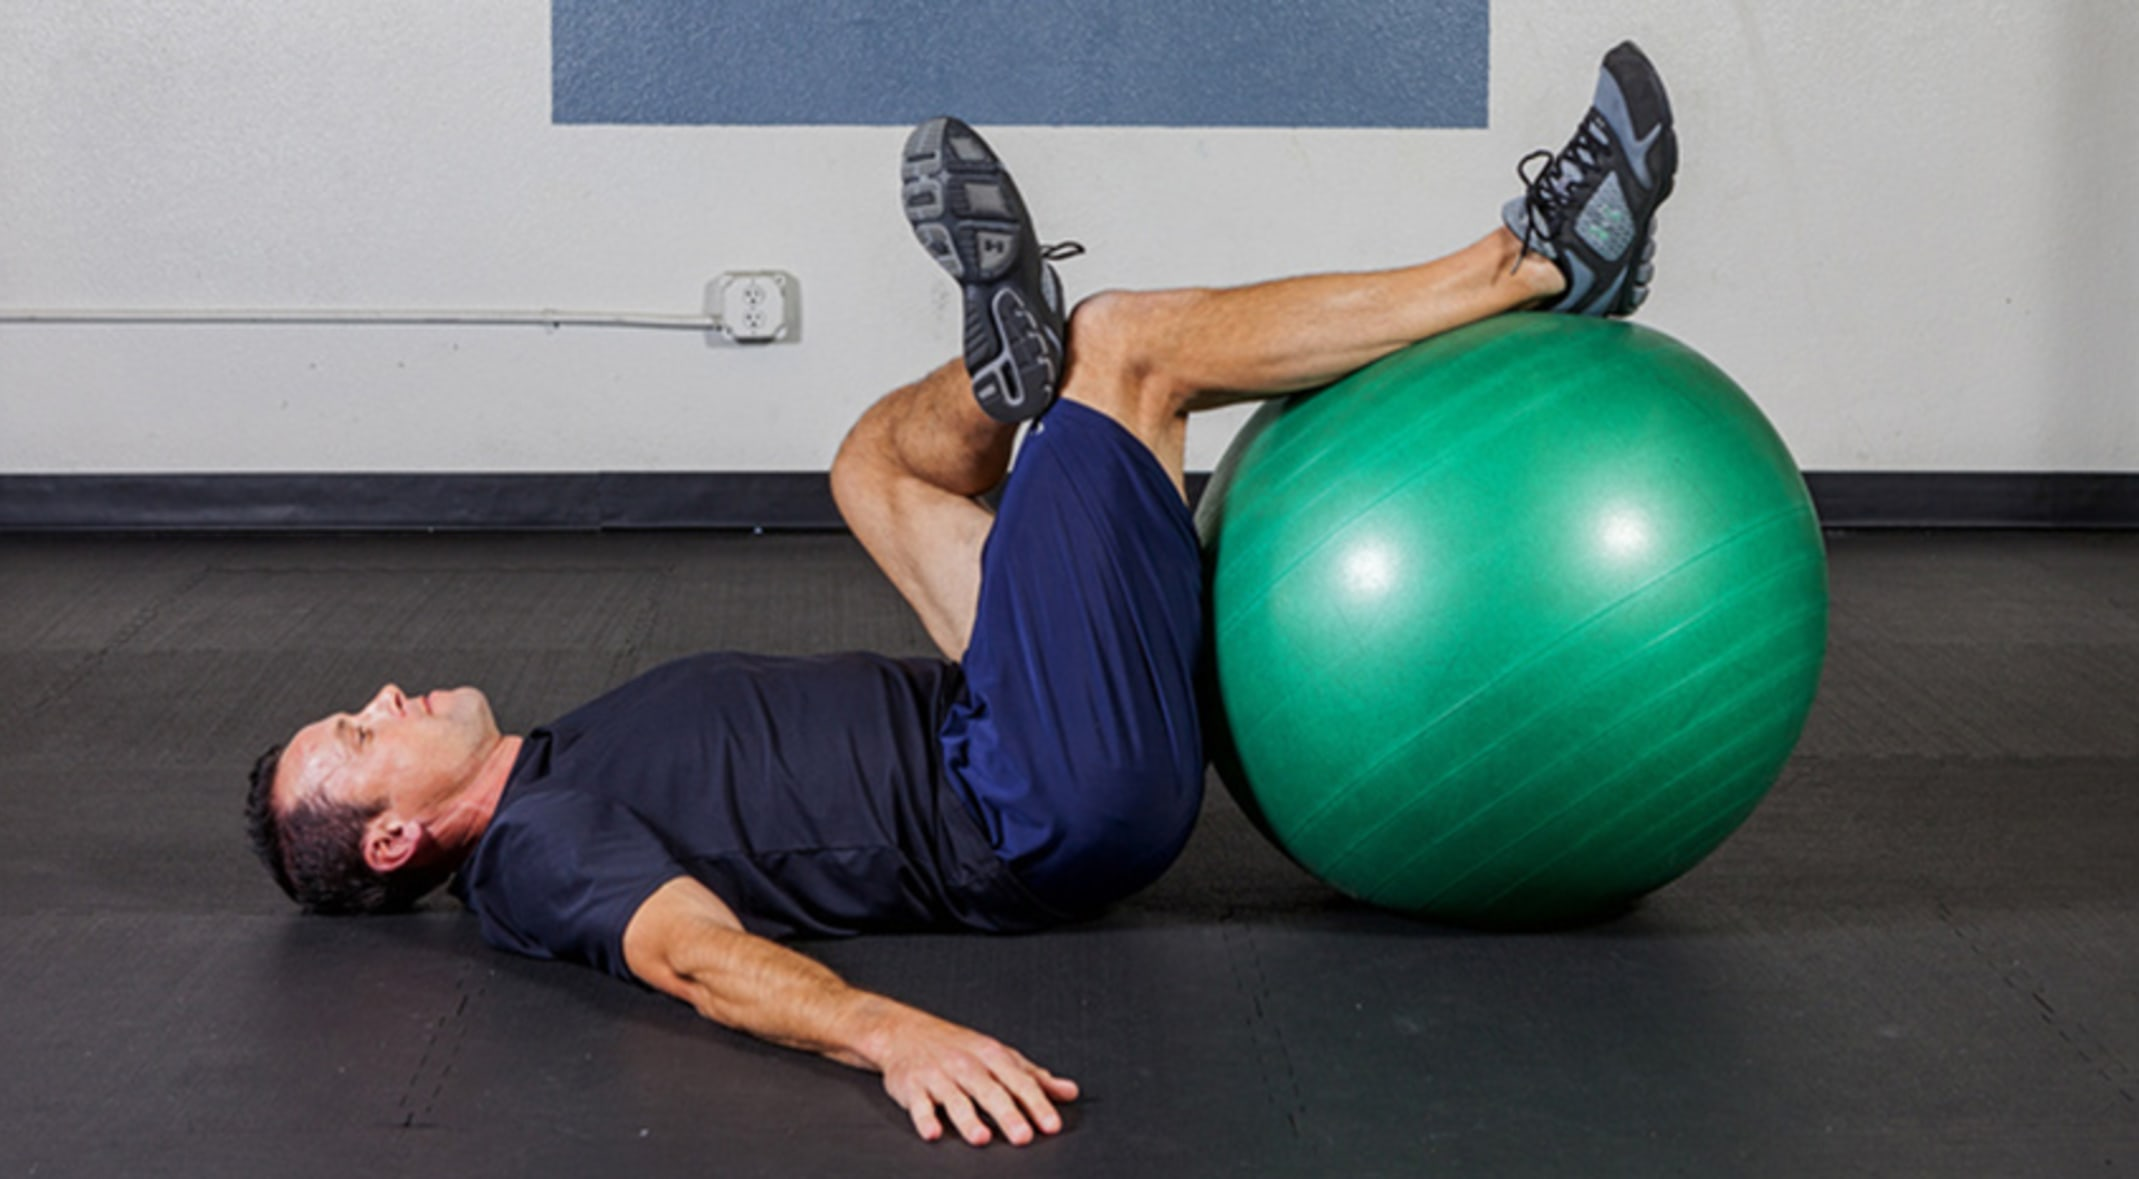 Rotary mobility of the hips